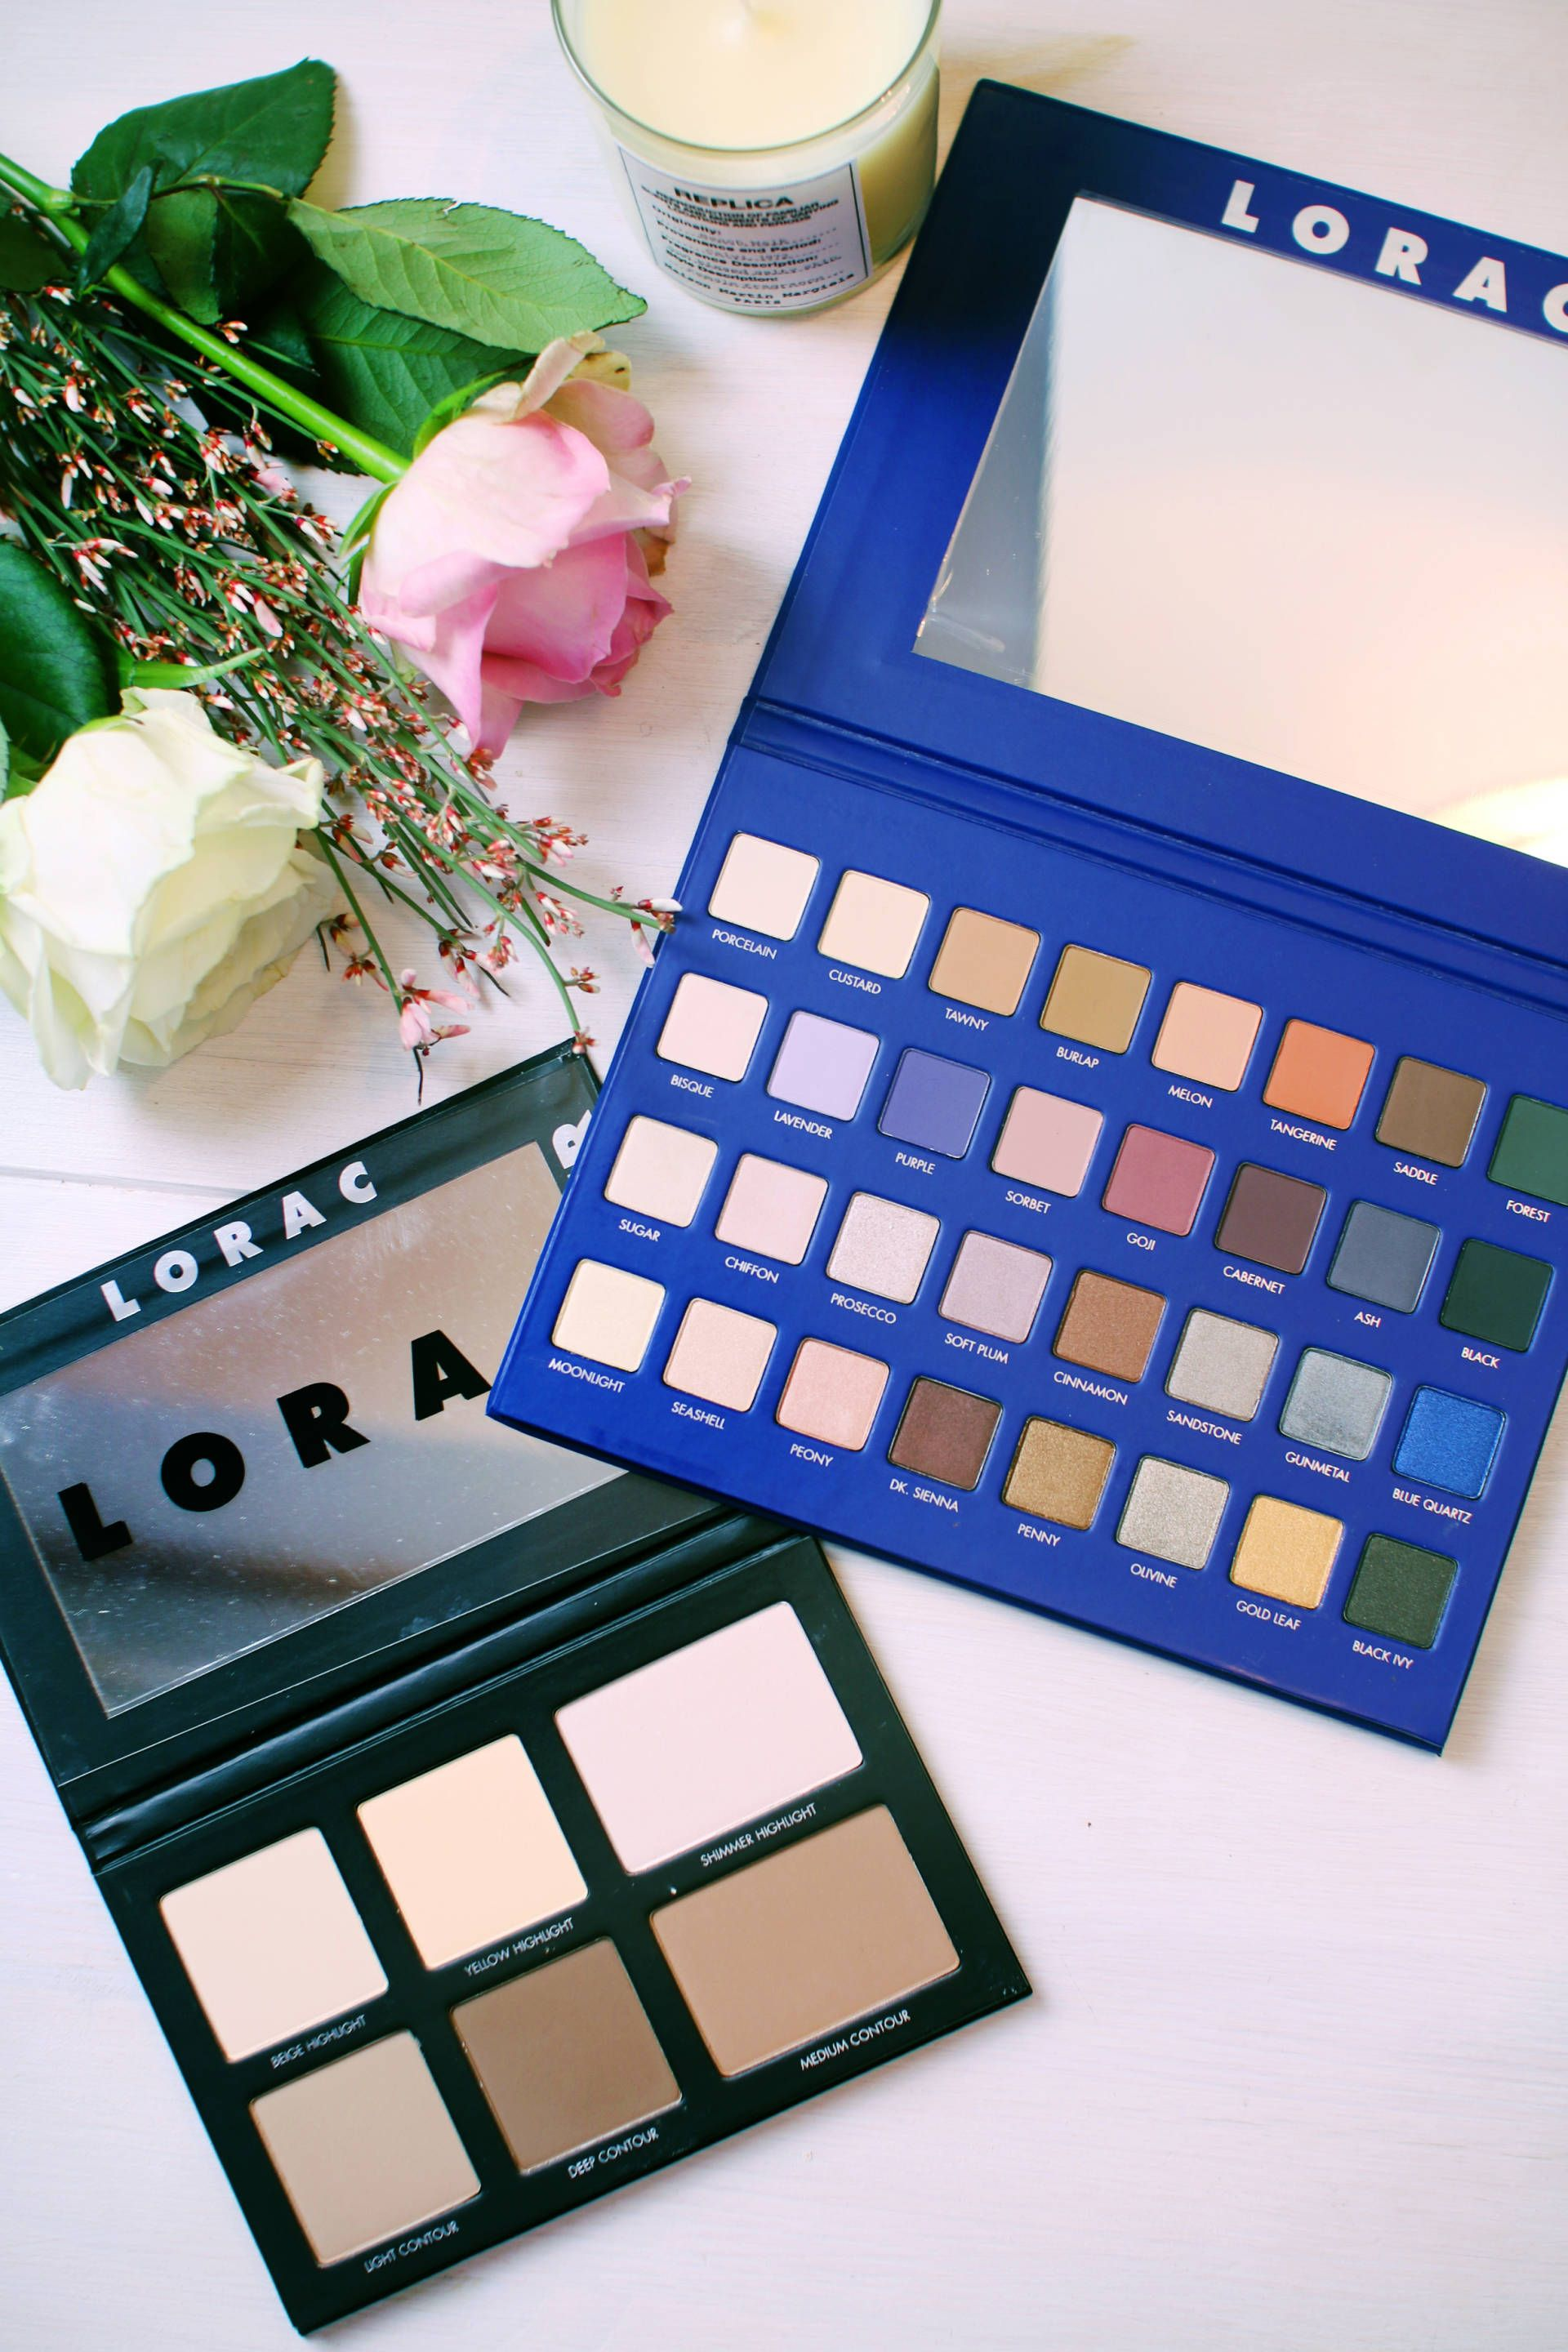 Lorac has changed the make up game! Head over to www.inthefrow.com to see my review of these amazing palettes